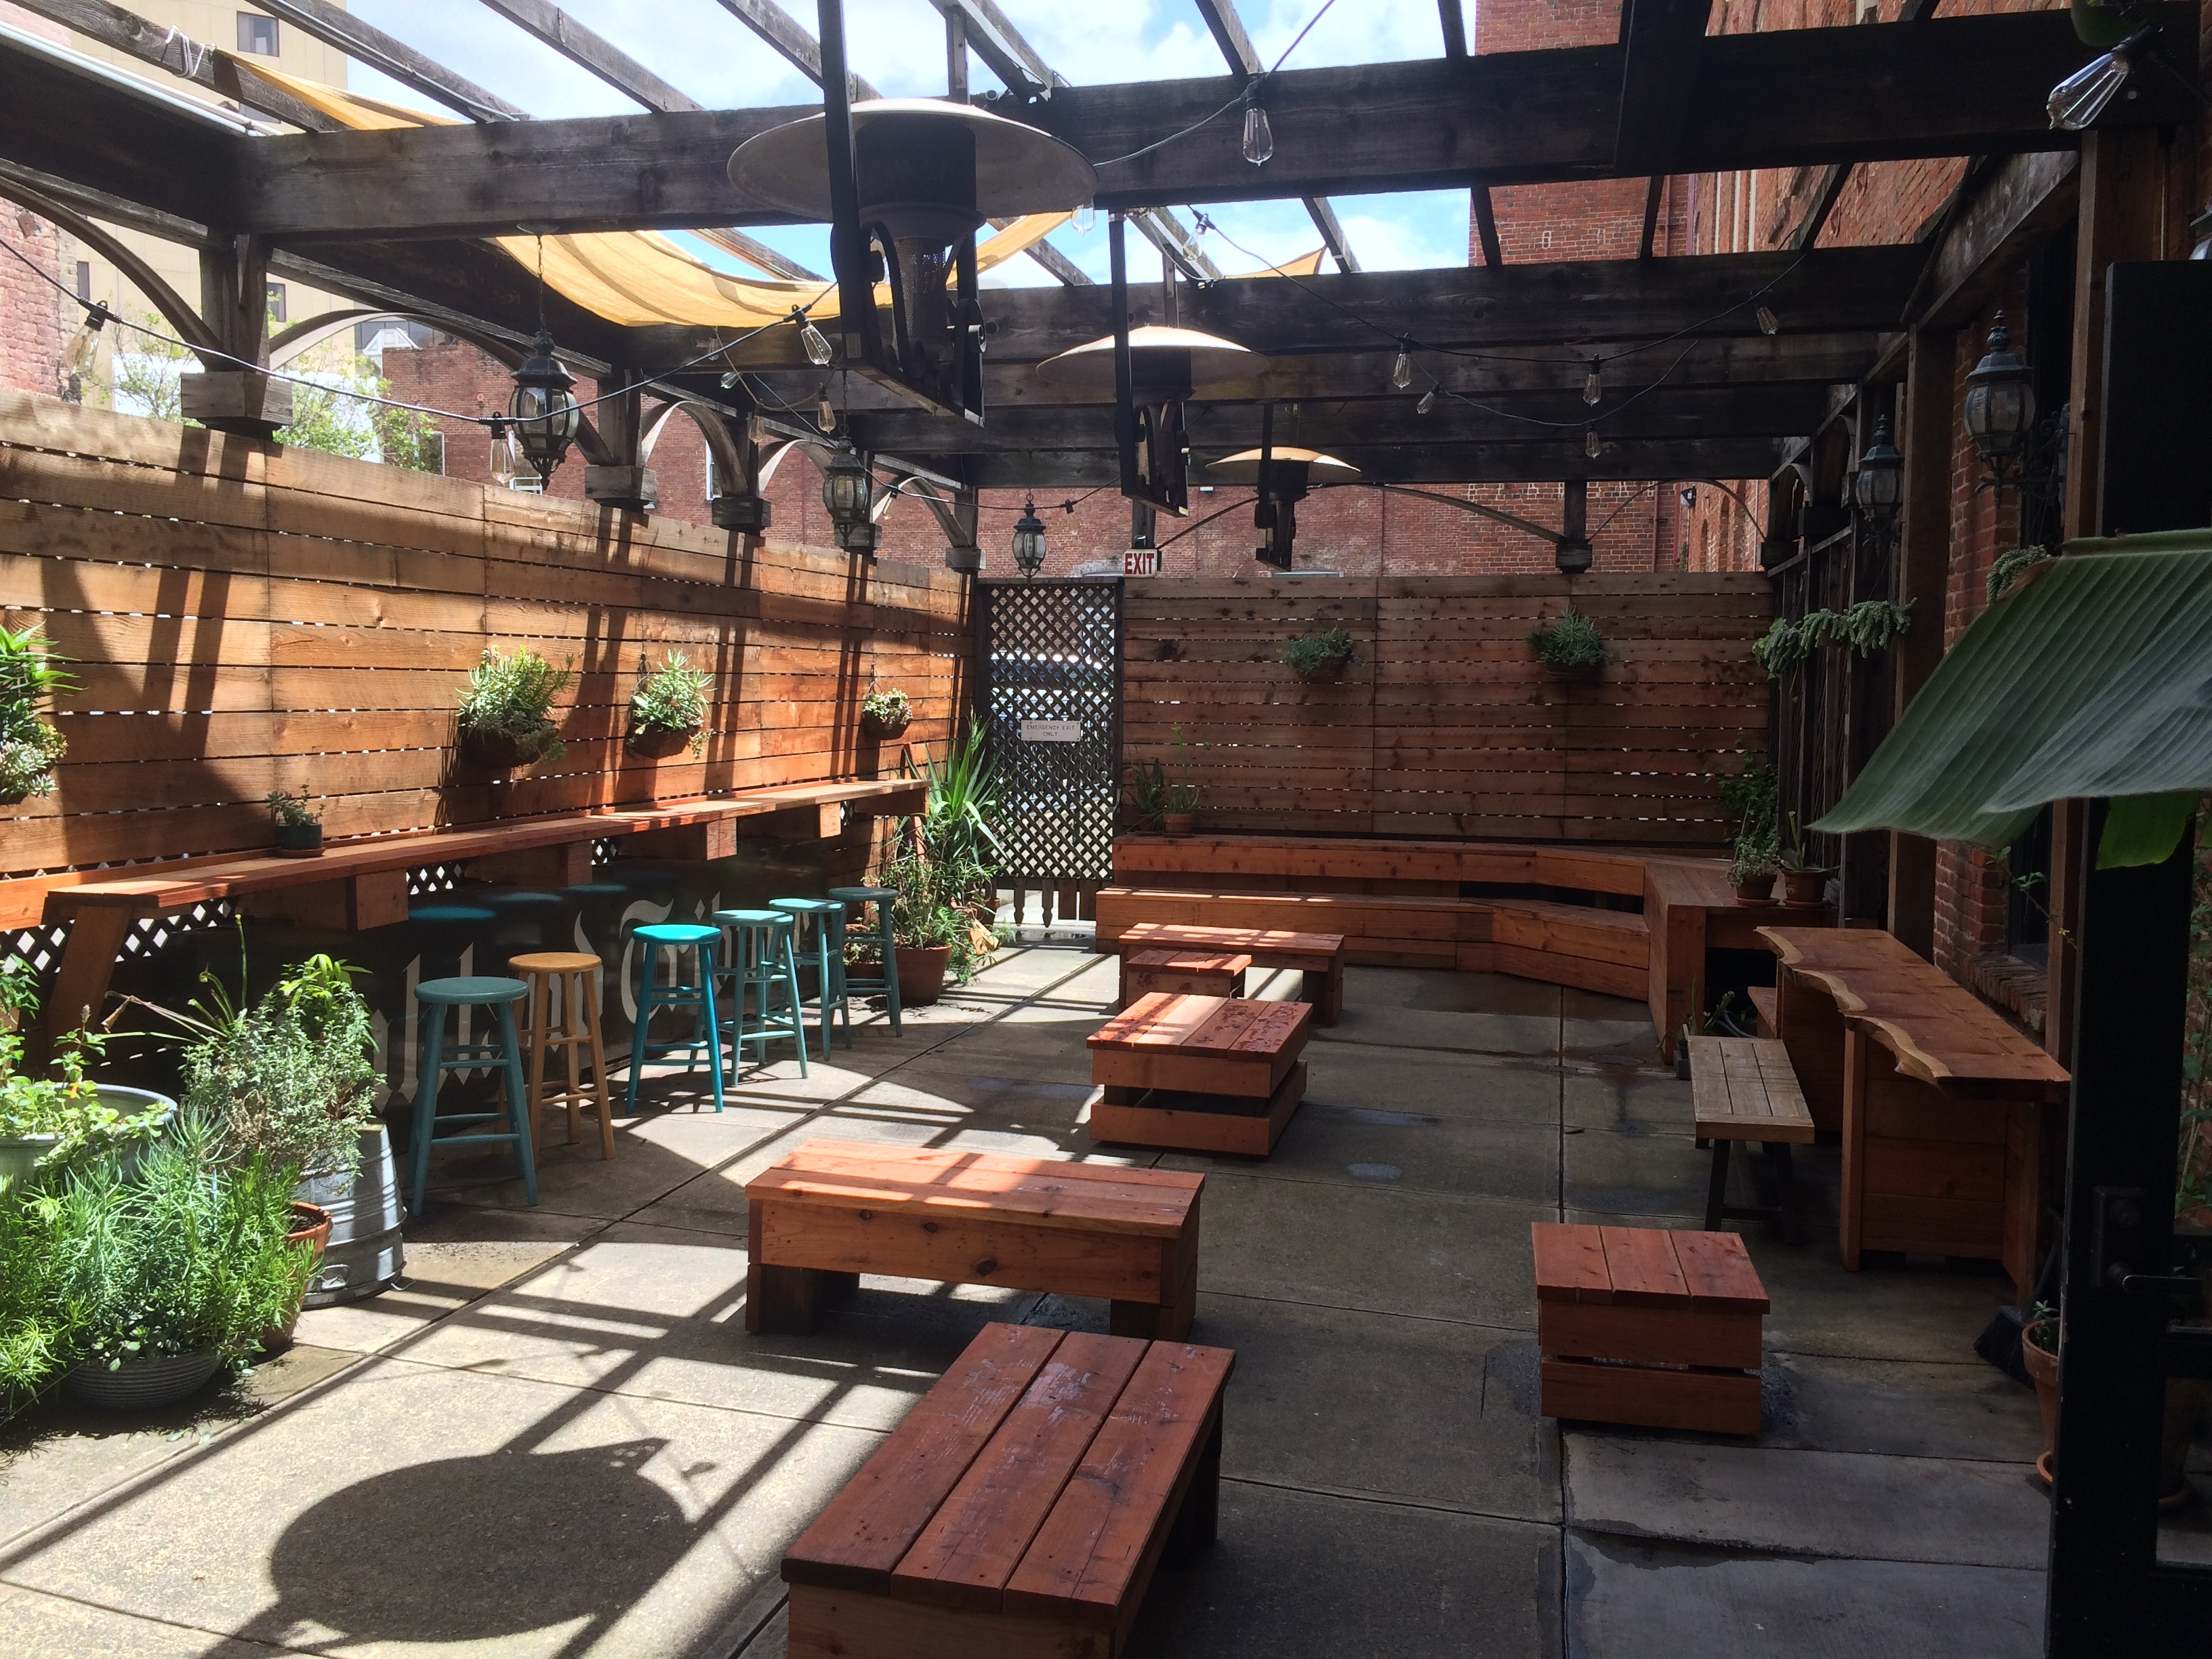 The patio at the Lede